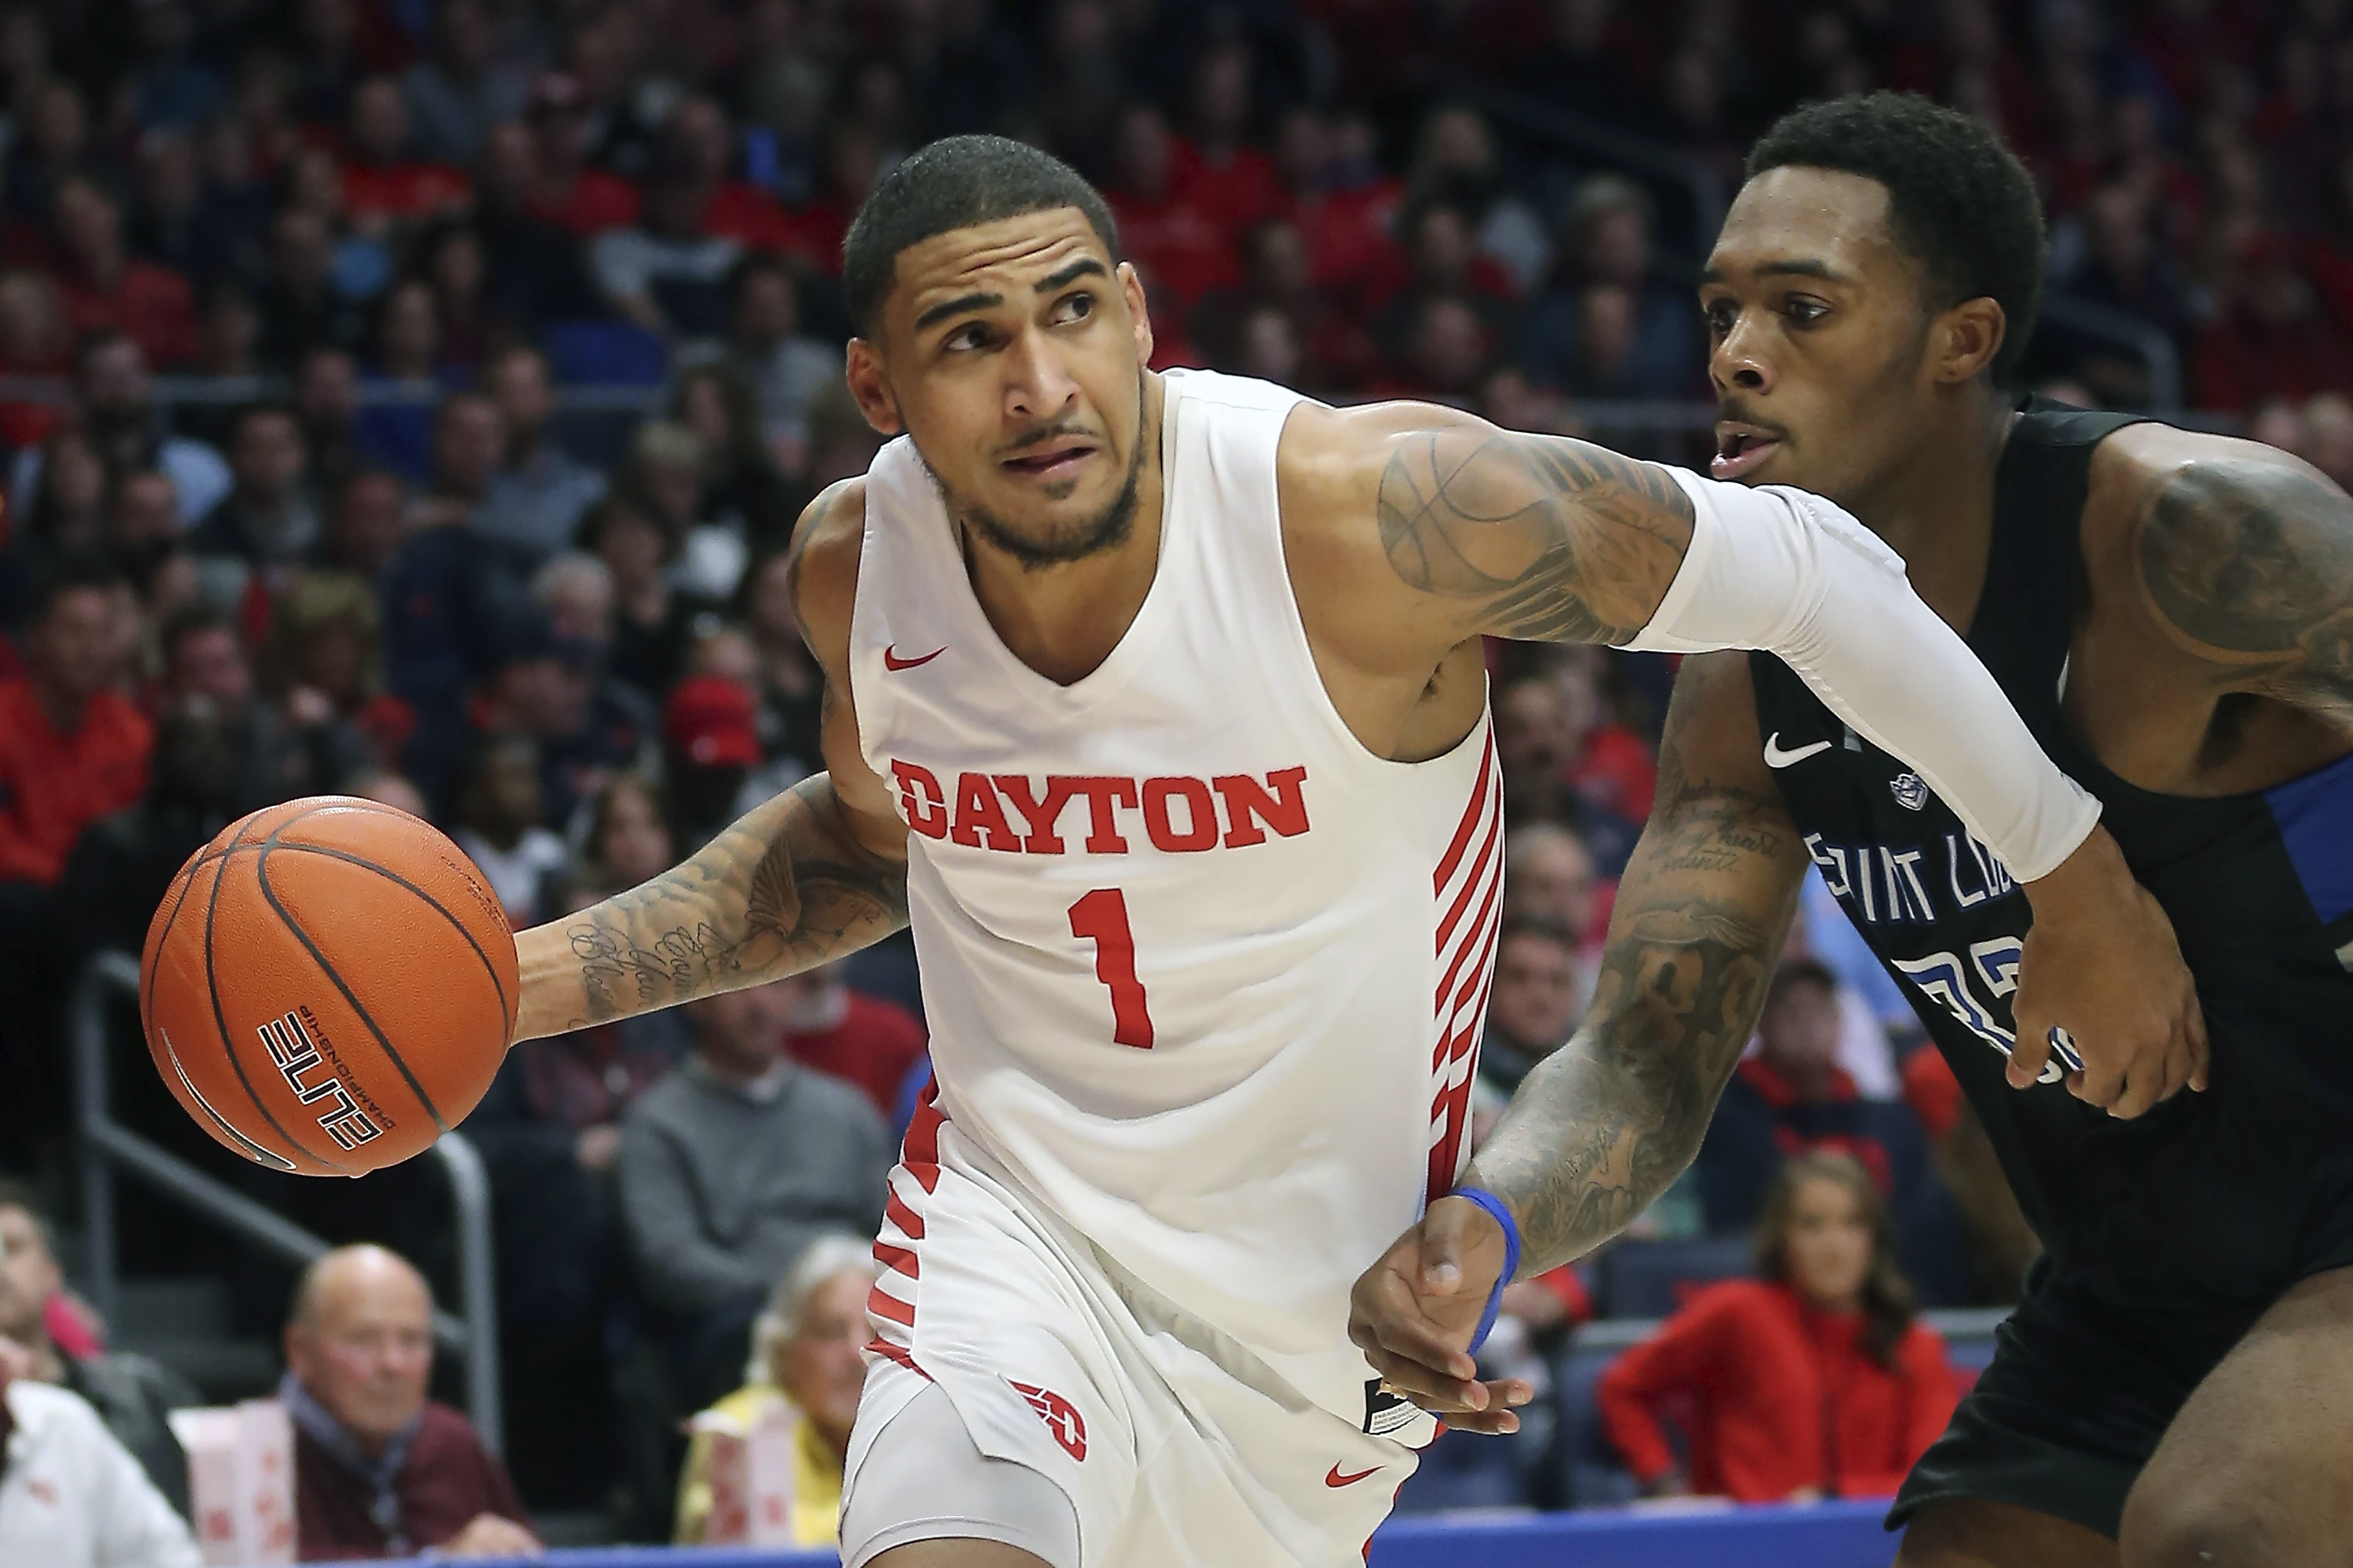 Dayton's Obi Toppin is the best power forward in the NBA Draft, but would he fit in with the Bulls?